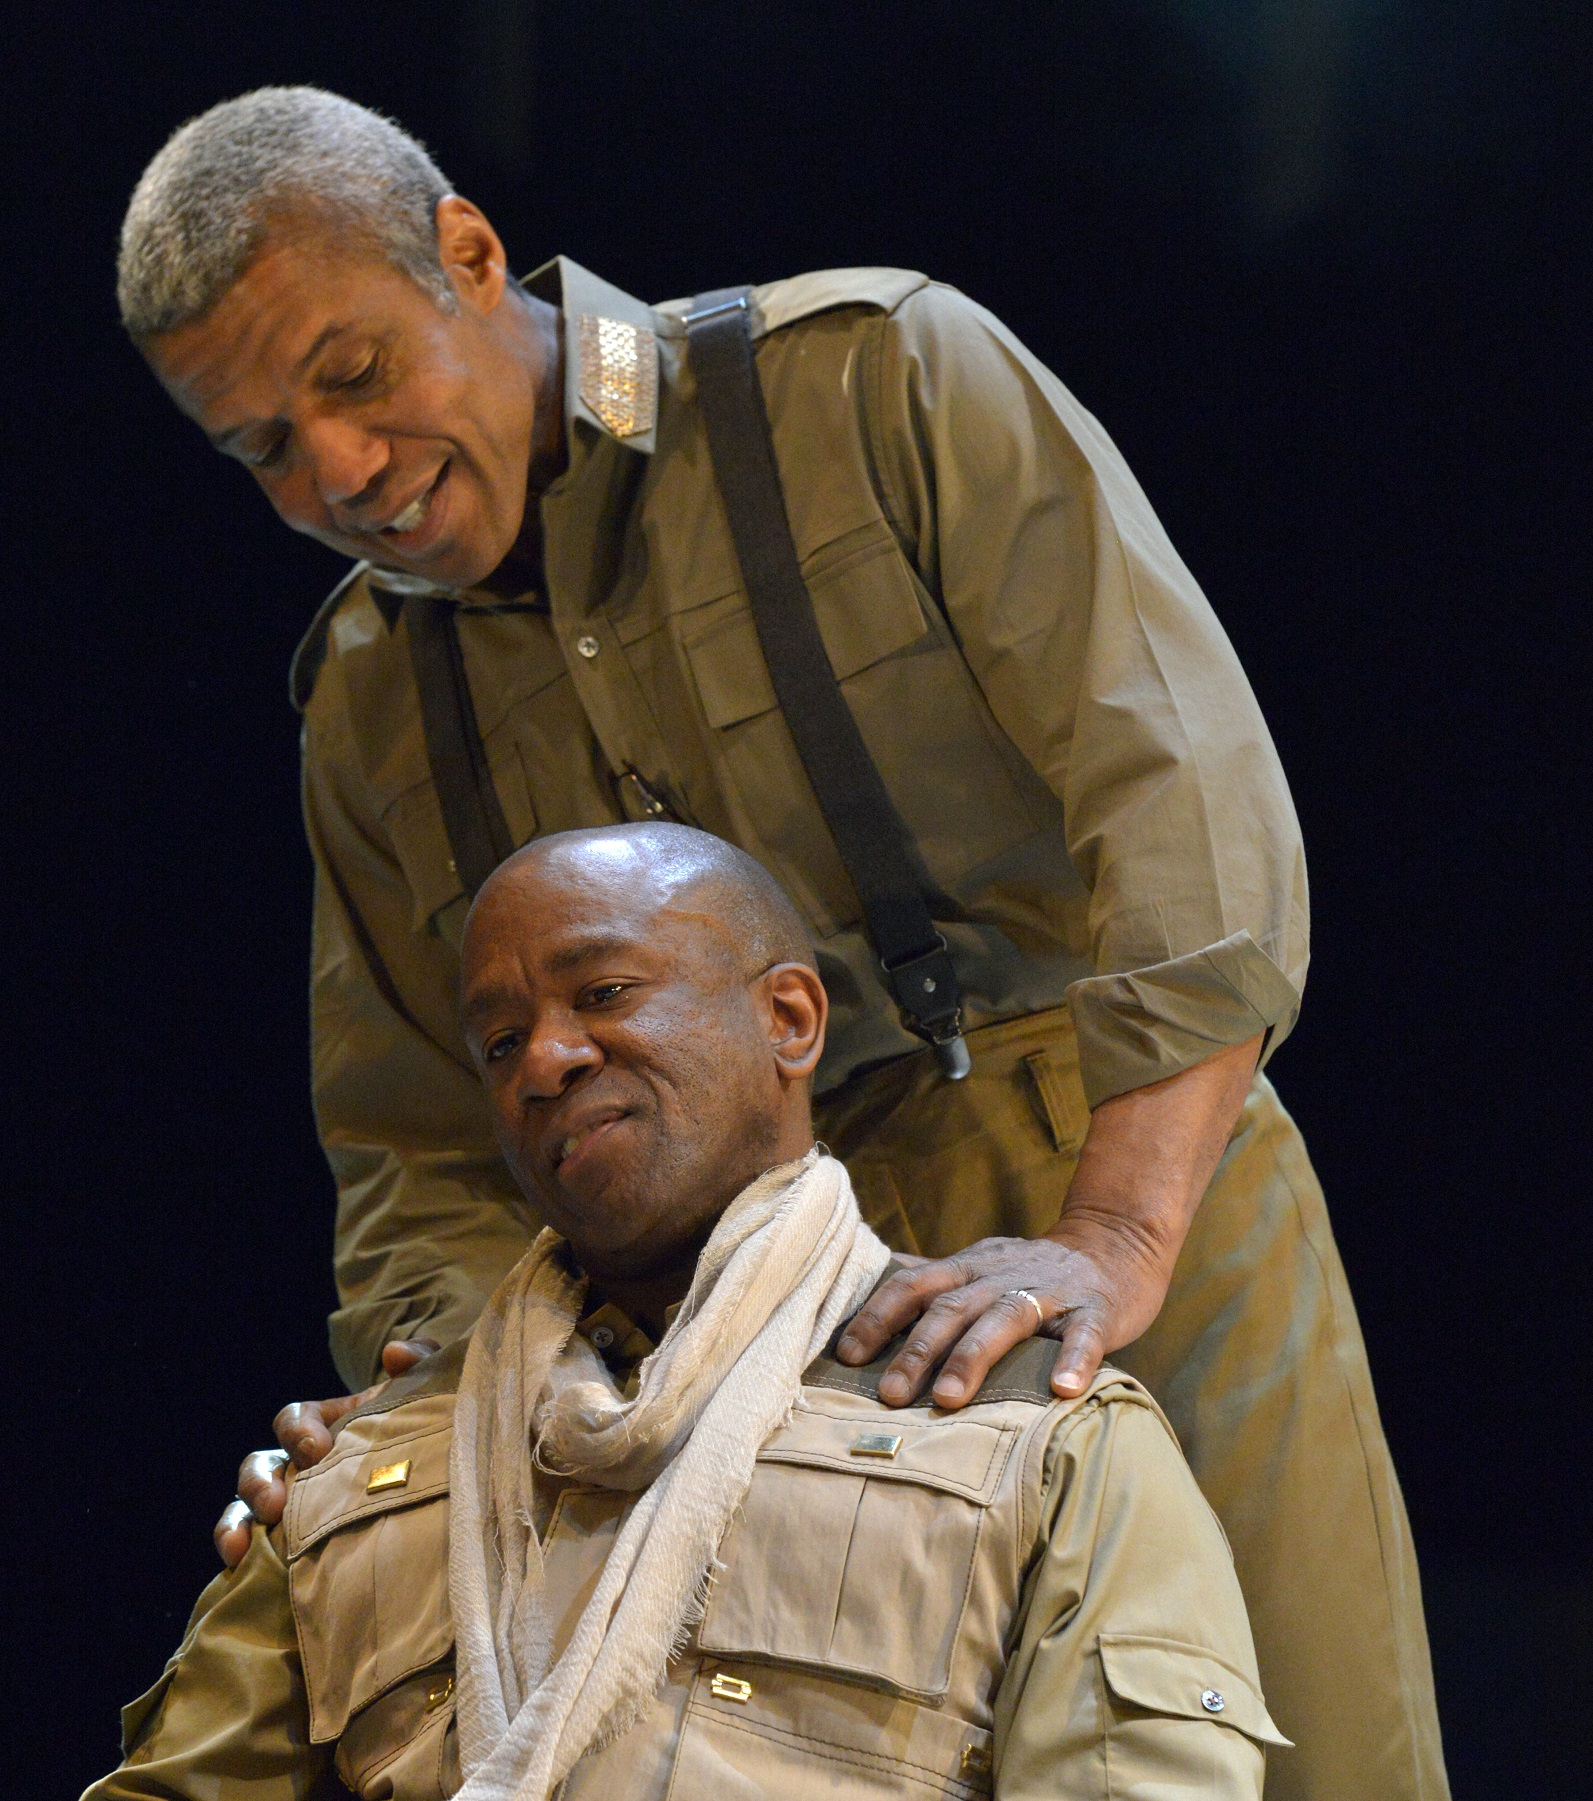 Othello review – brutal, candlelit tragedy in a man's world